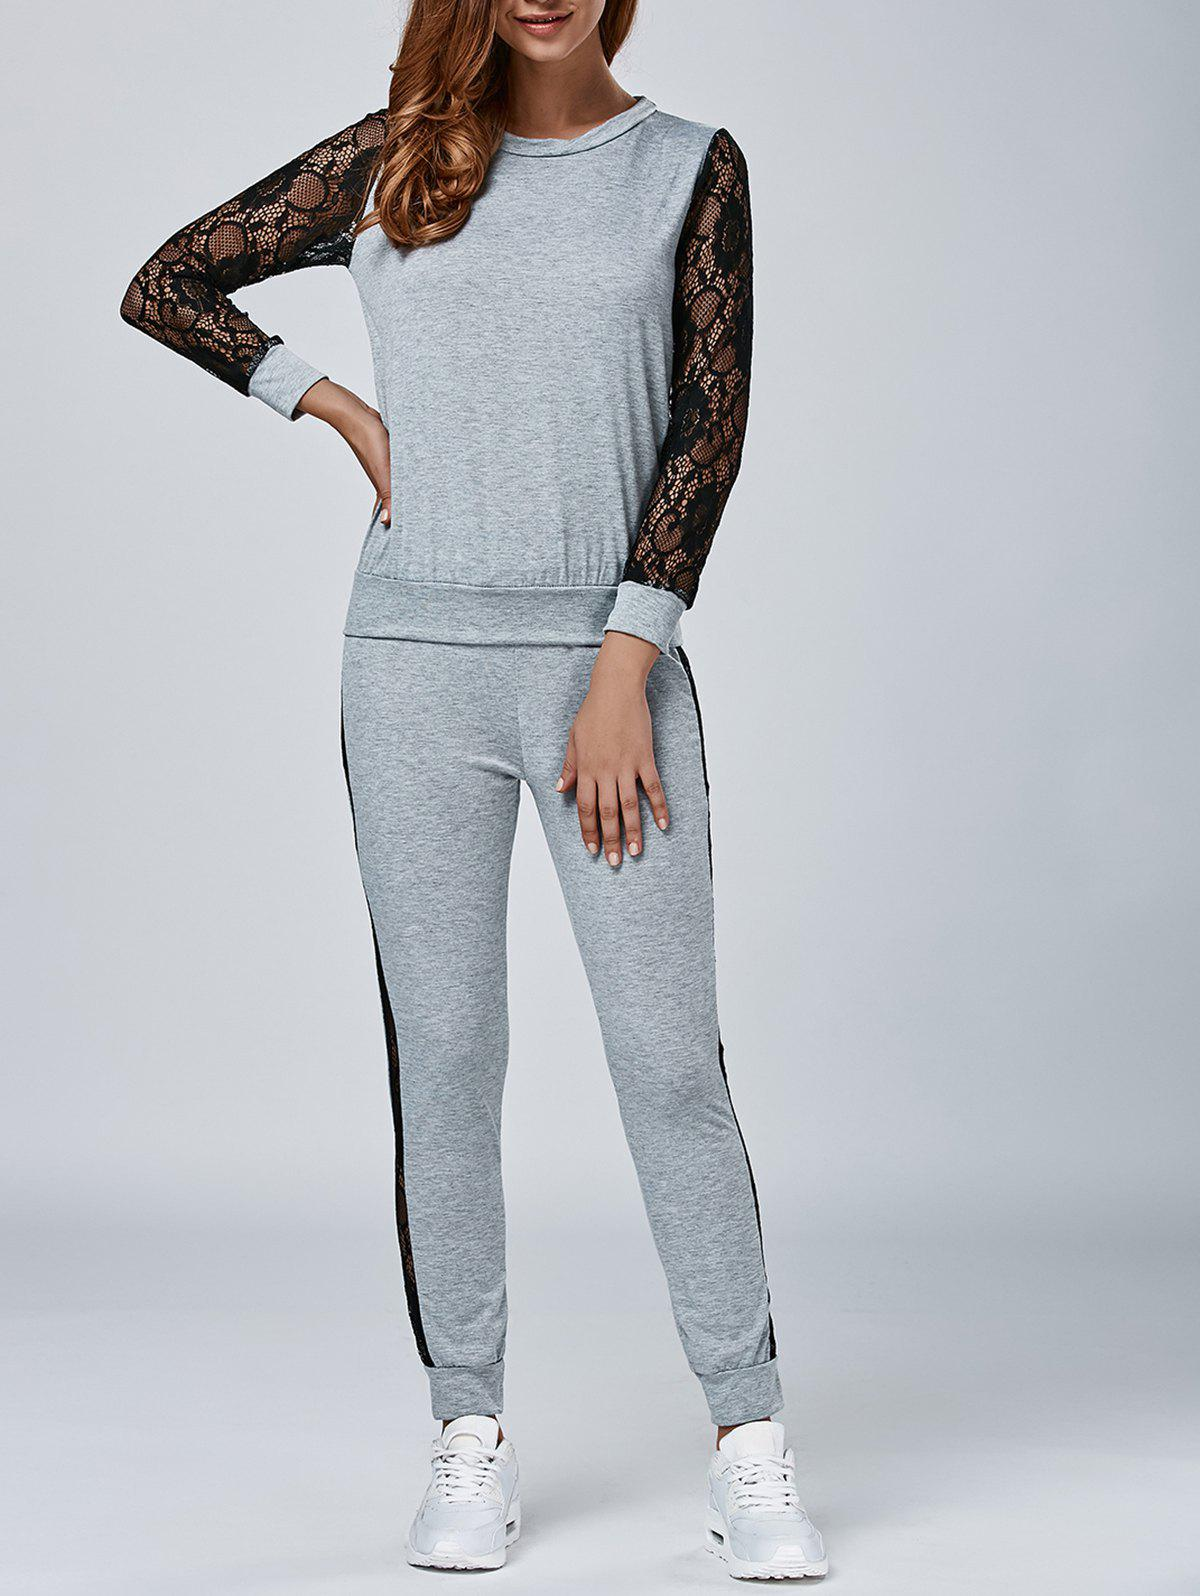 Dentelle Splicing Sweatshirt avec Pants - gris S